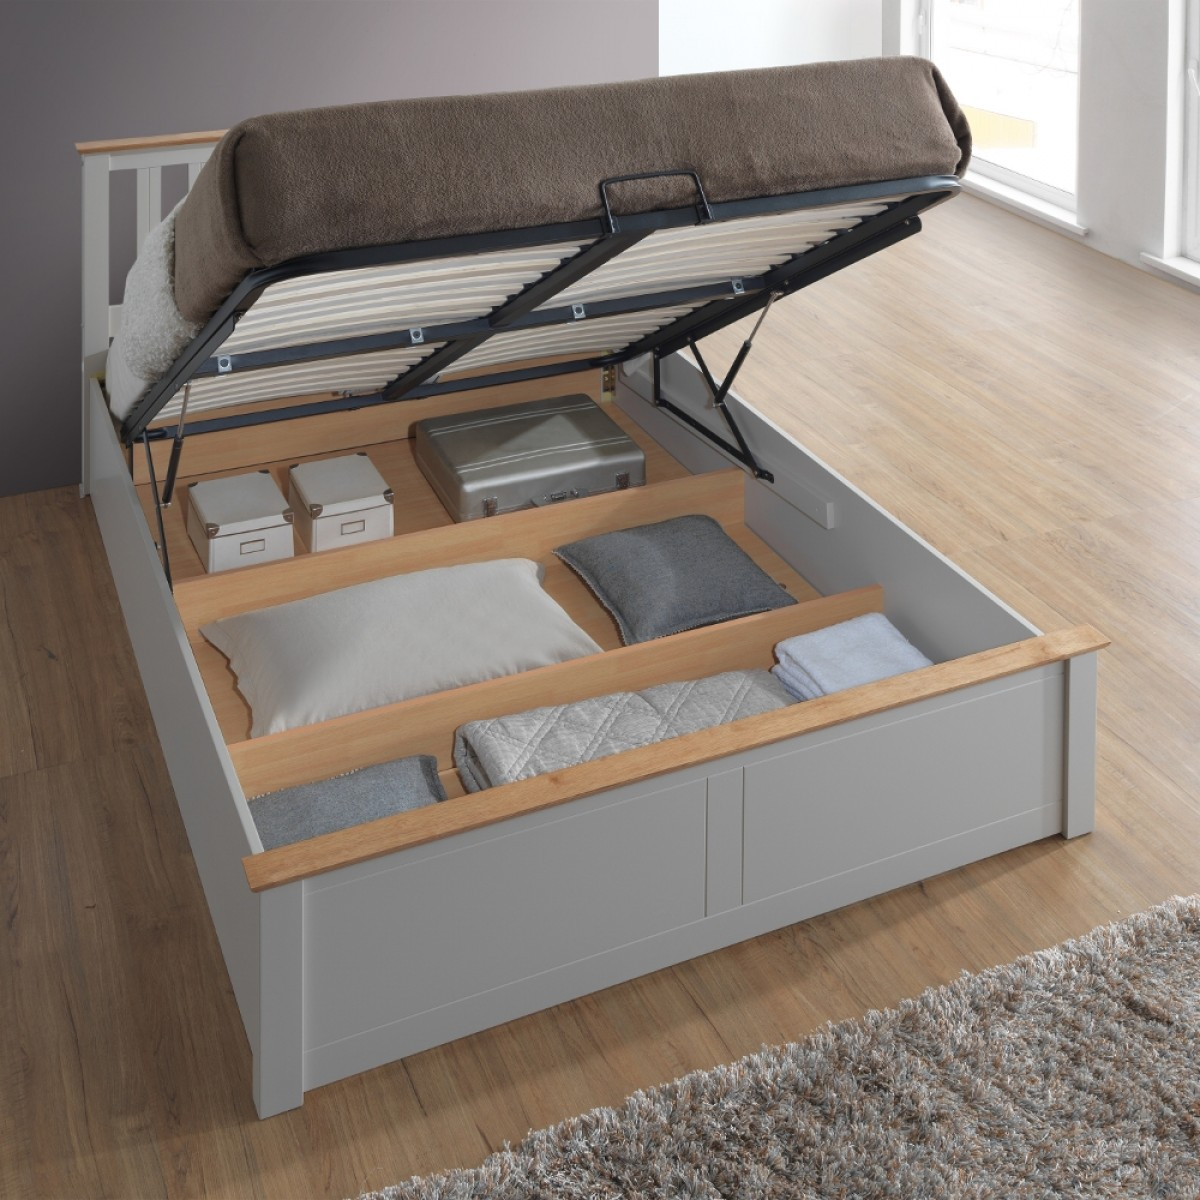 Wooden Beds With Storage ~ Phoenix pearl grey wooden ottoman storage bed